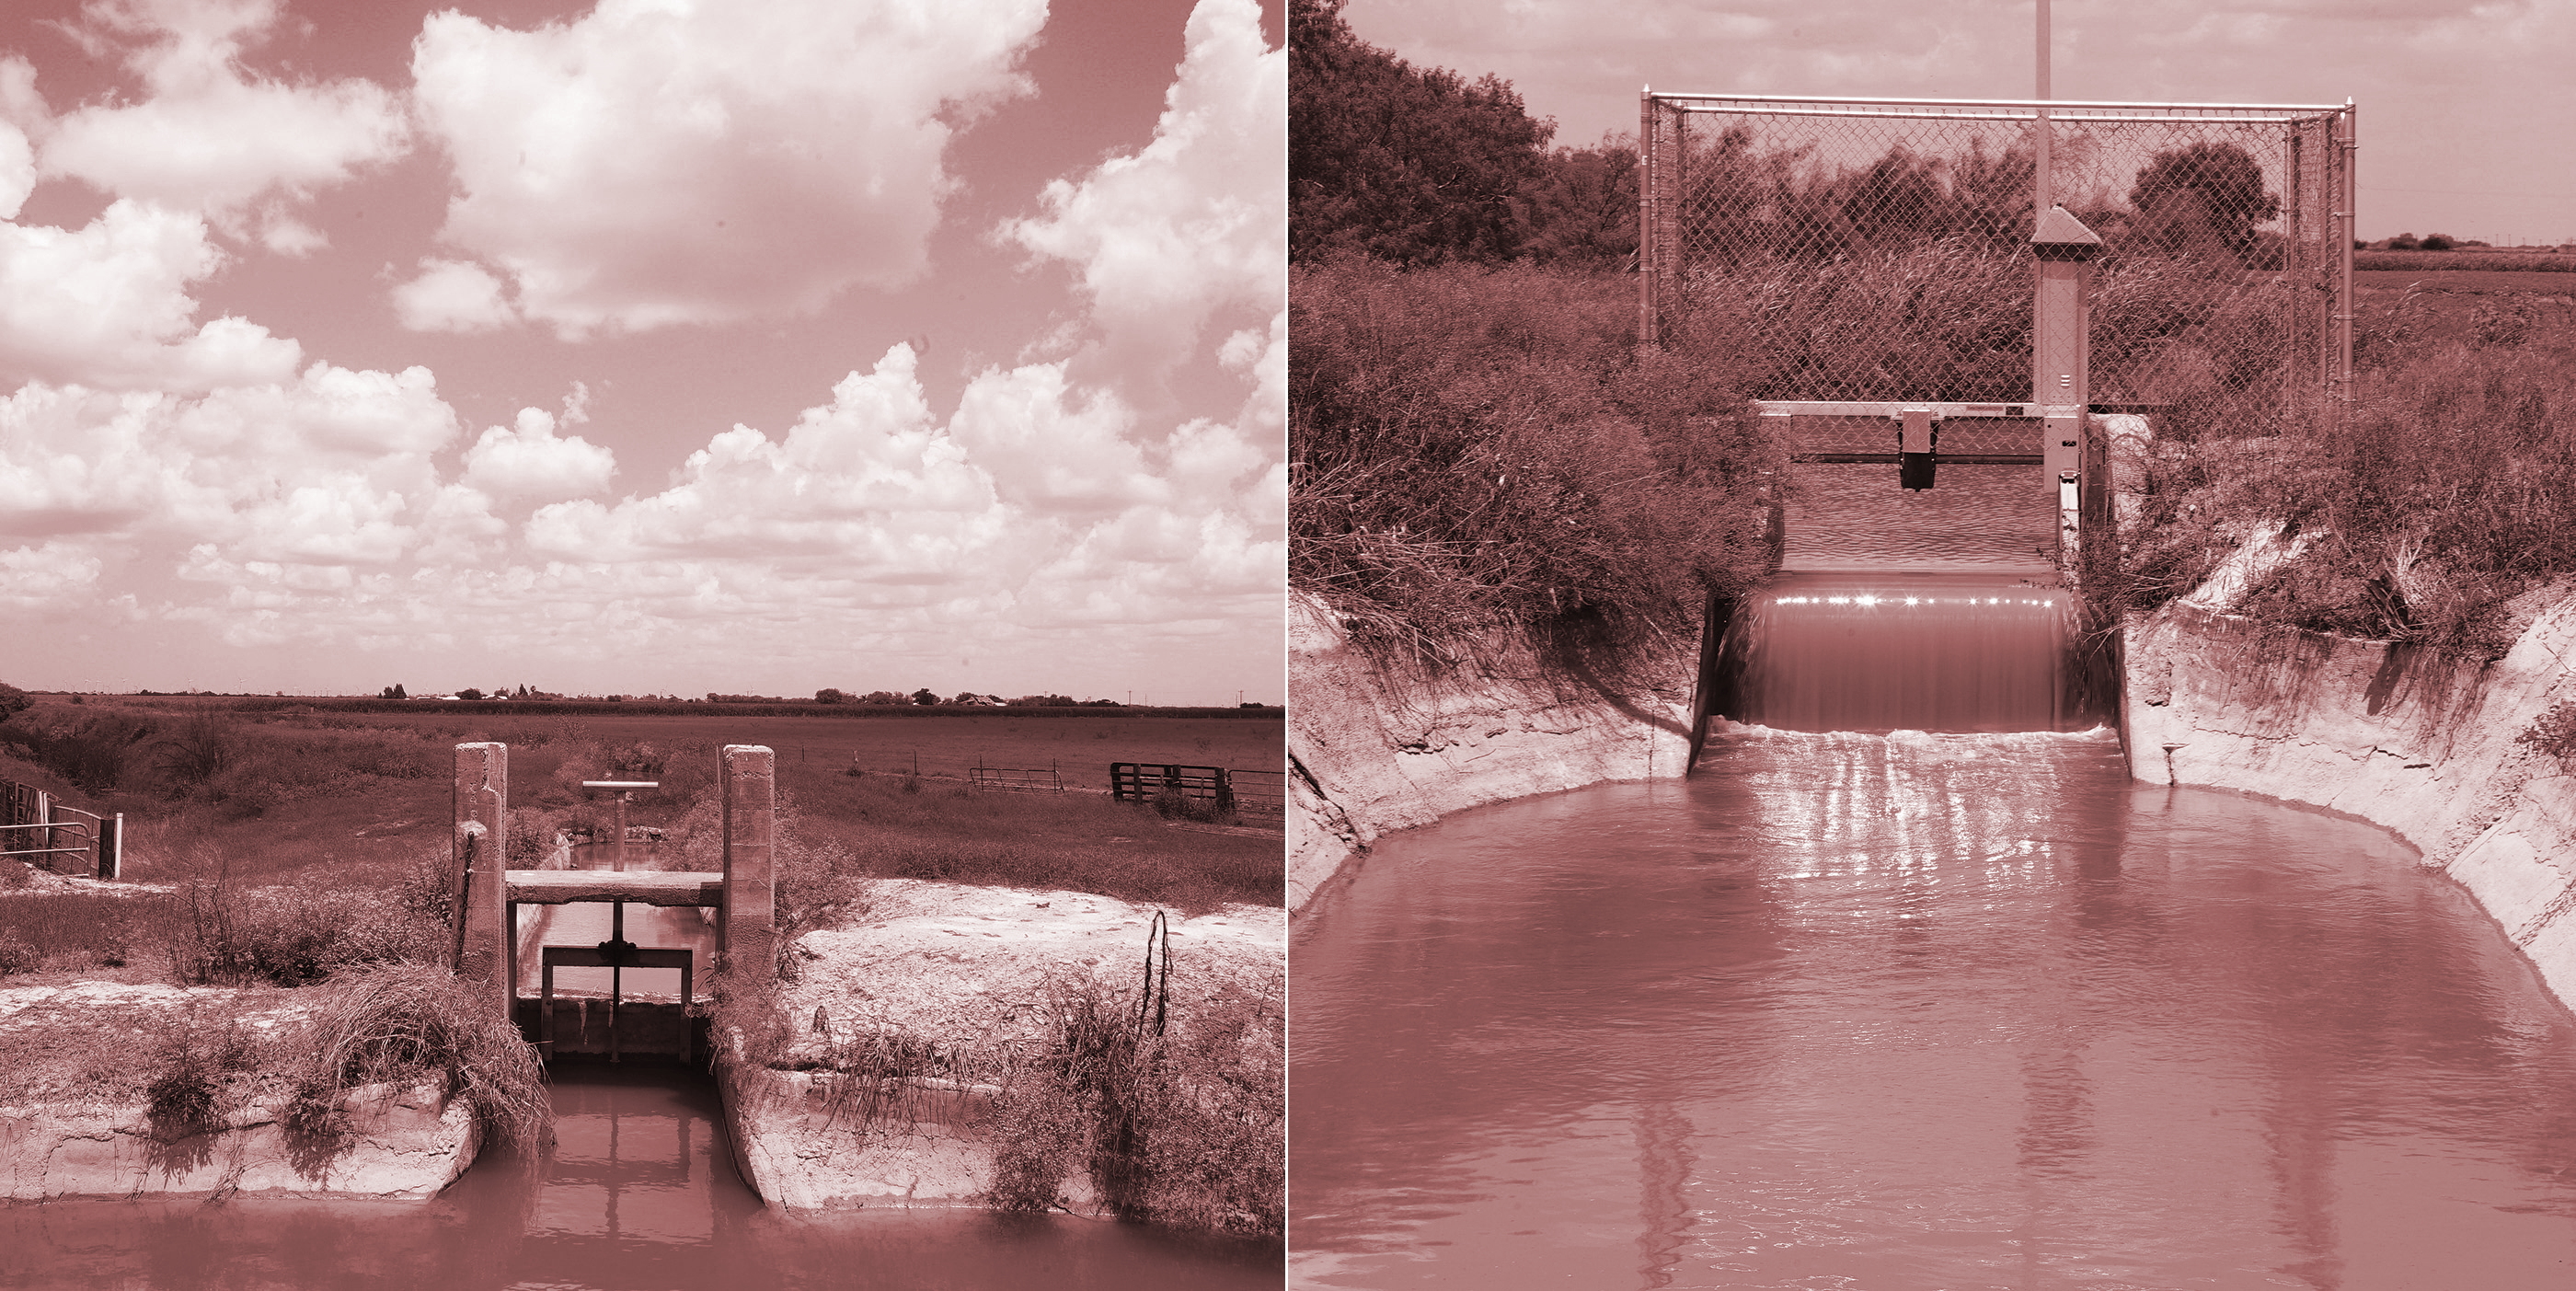 Left: One of the Delta Lake Irrigation District's 35 old, hand-turned canal gates ,on the Raymondville canal. Right: A newer, electronic canal gate on the Raymondville canal.